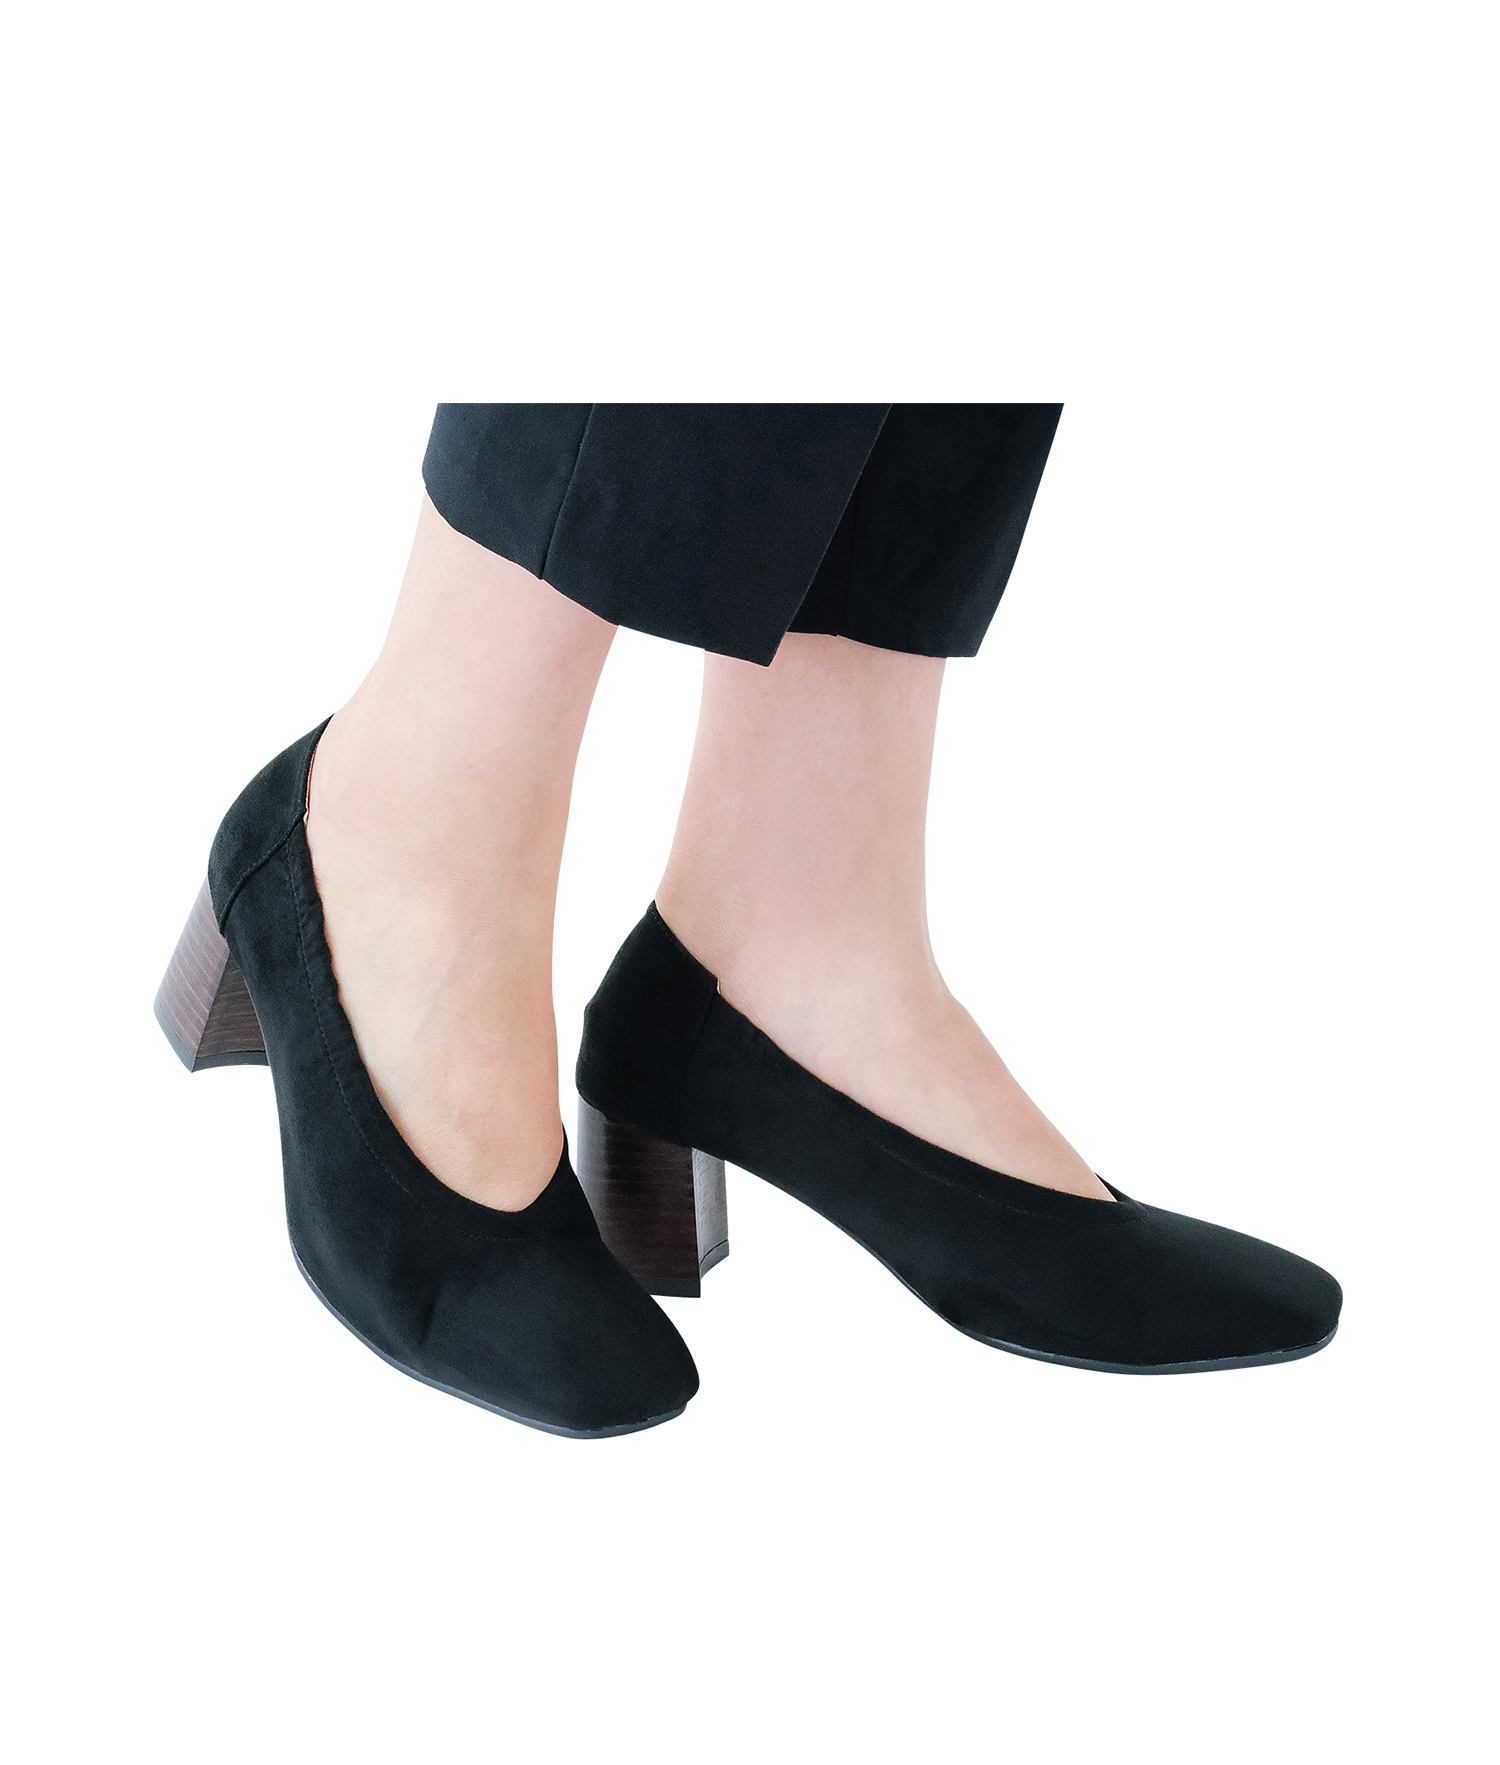 AnnaKastle Womens Block Heel Elastic Suede Pumps Black